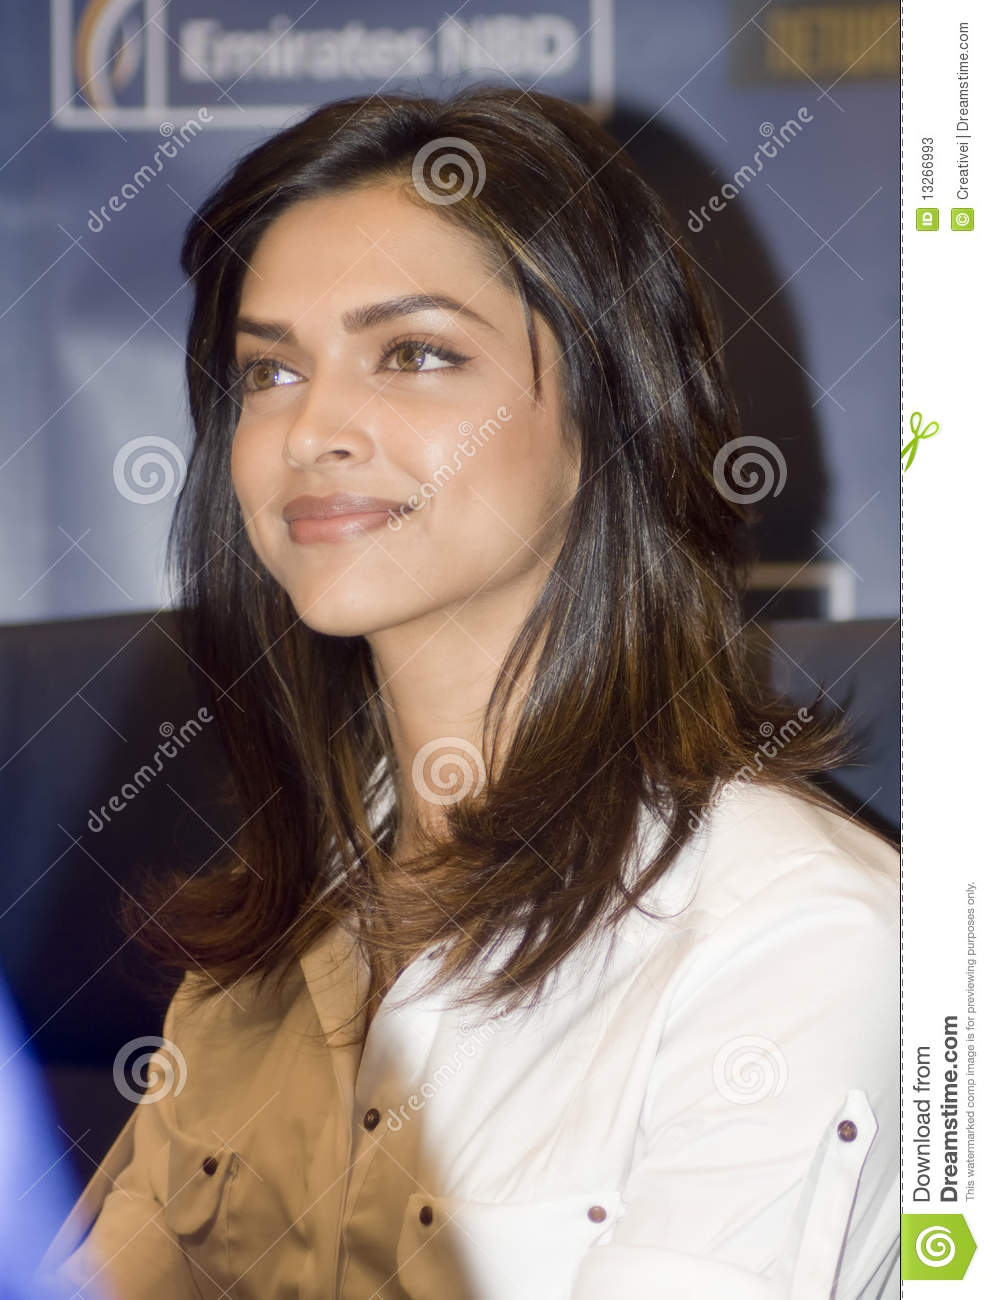 deepika padukone, indian actress editorial stock photo - image of